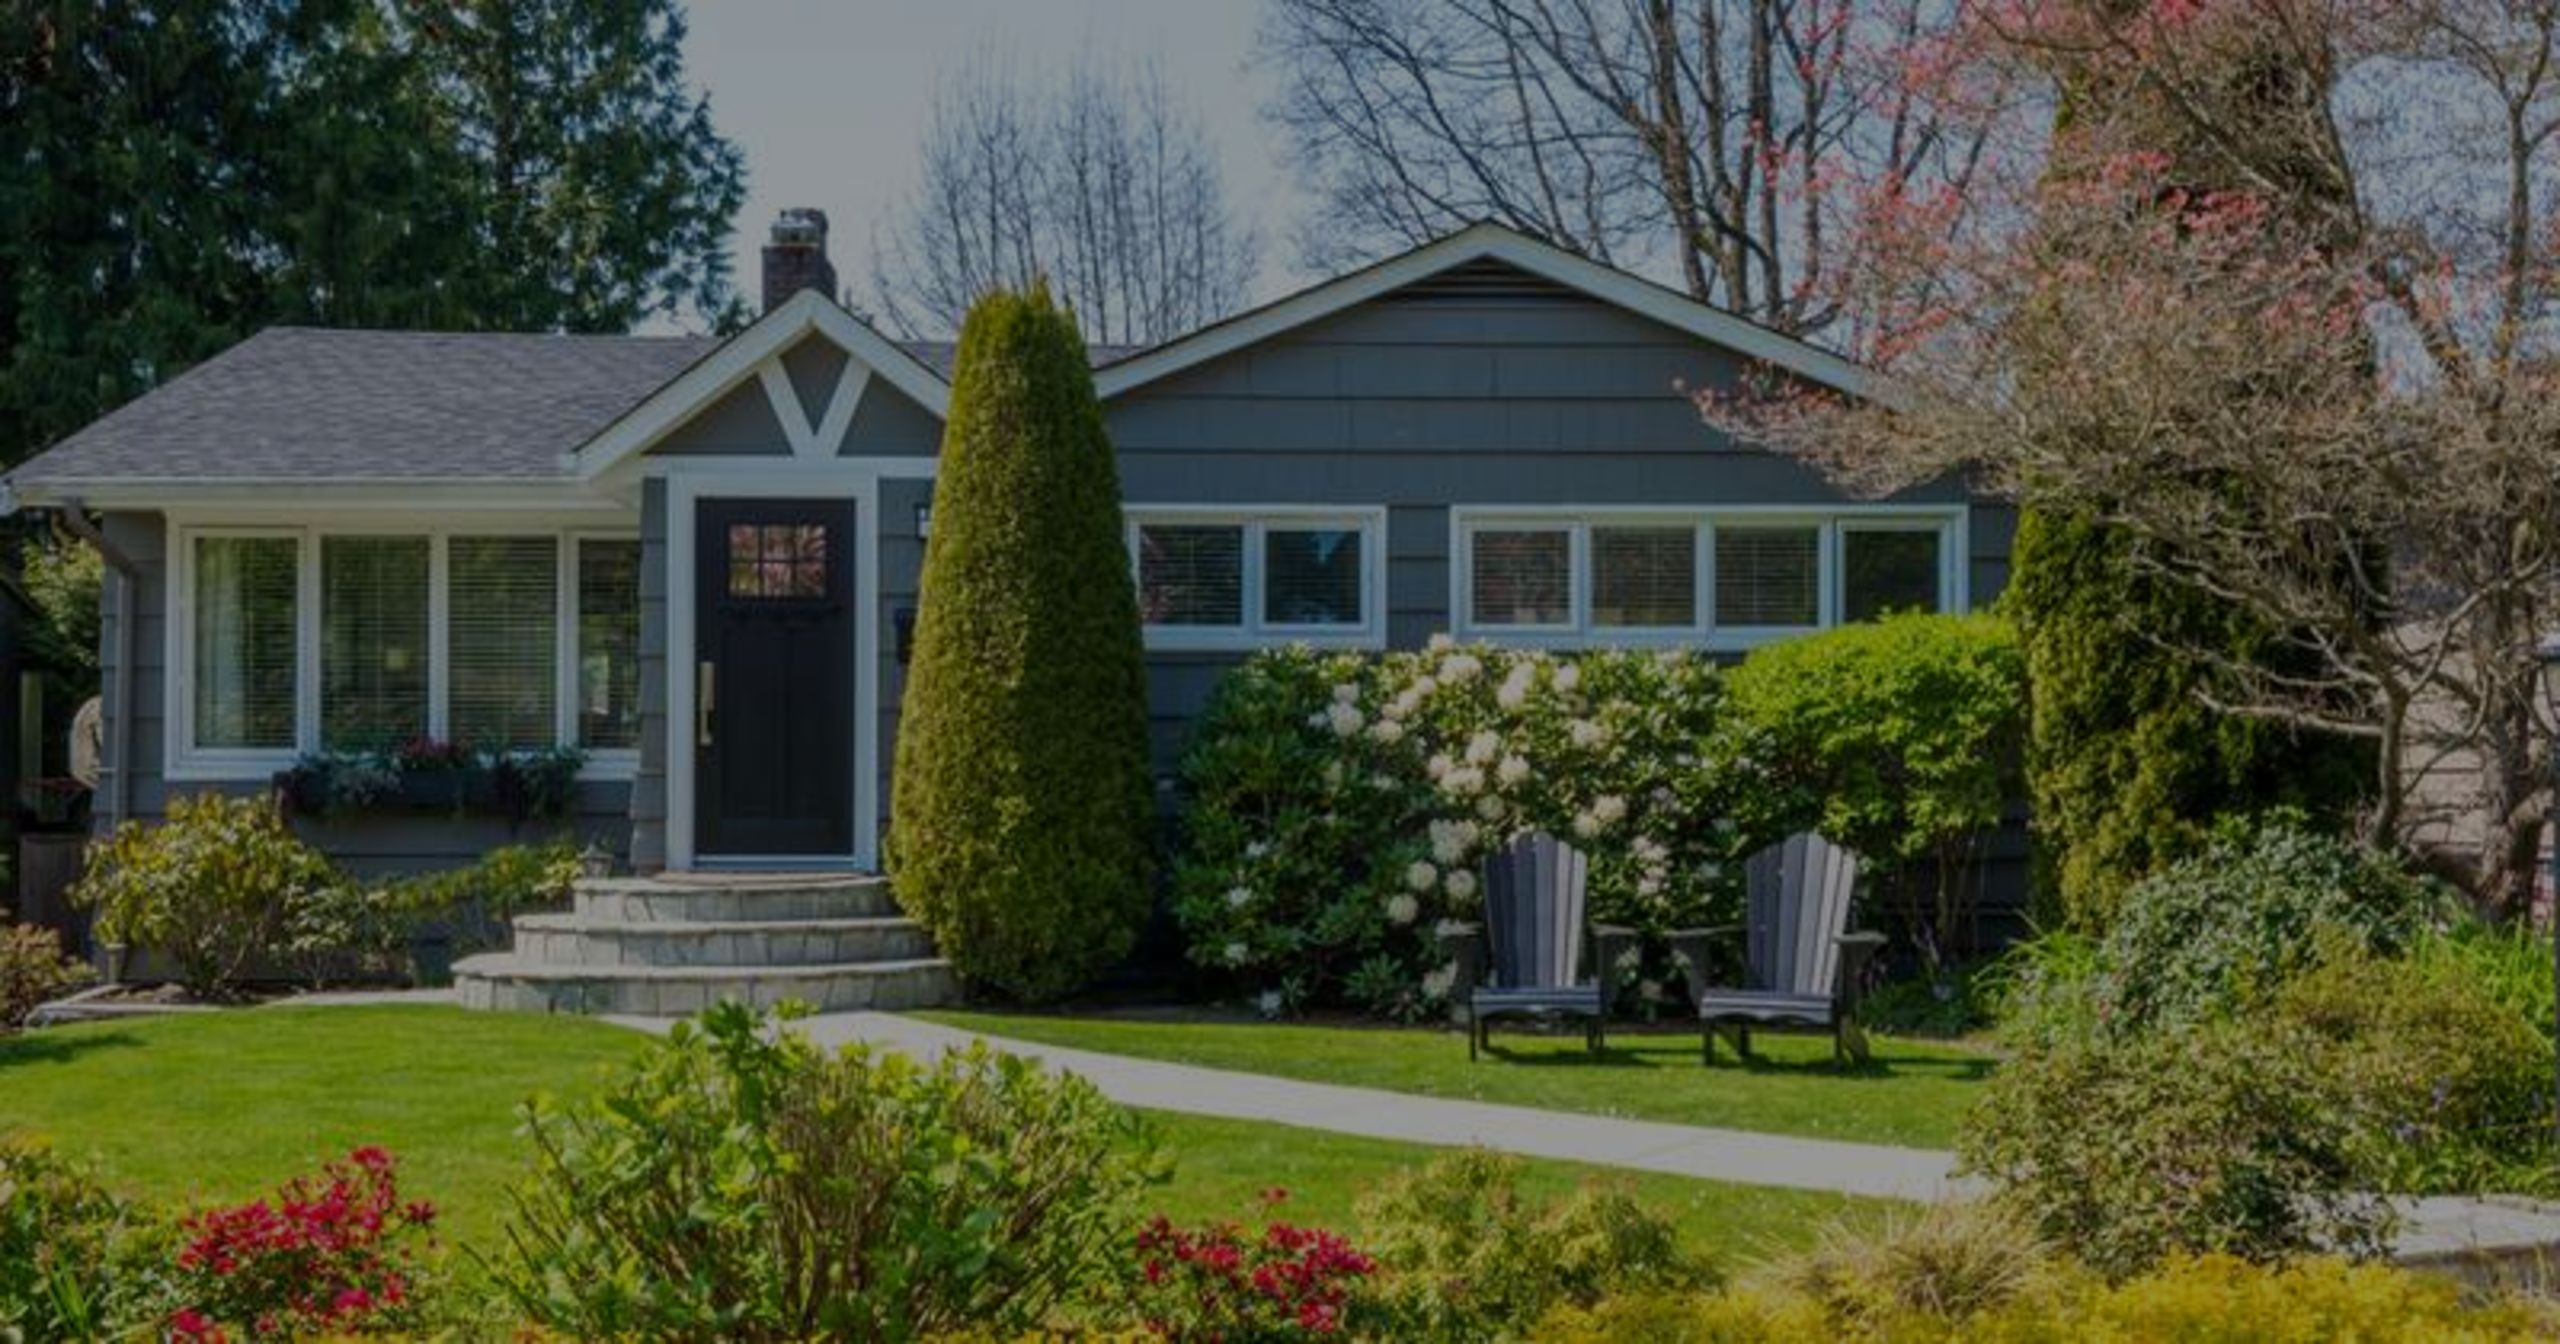 BUYING: CONSIDERATIONS FOR PURCHASING YOUR RETIREMENT HOME